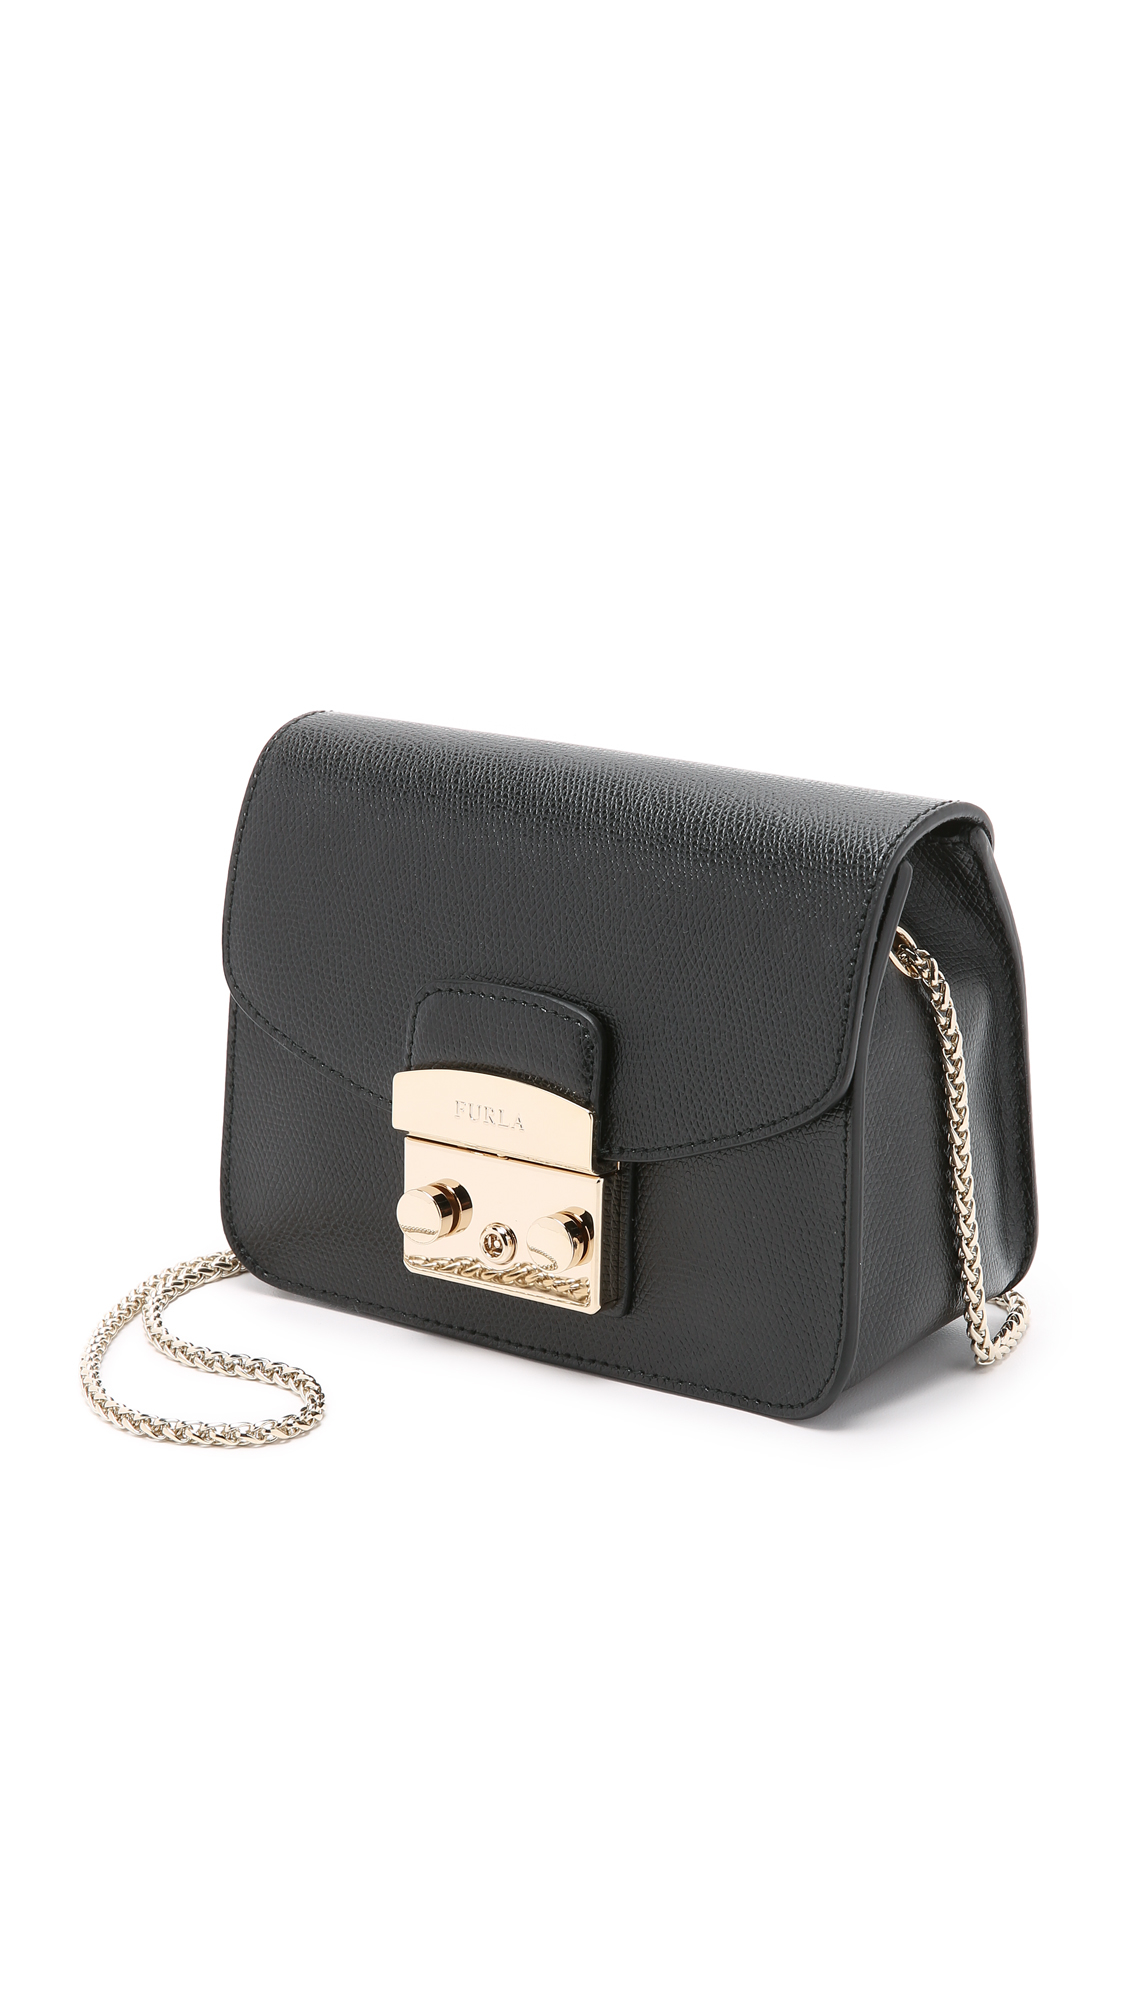 Furla Julia Mini Studded Leather Crossbody Bag In Black Lyst